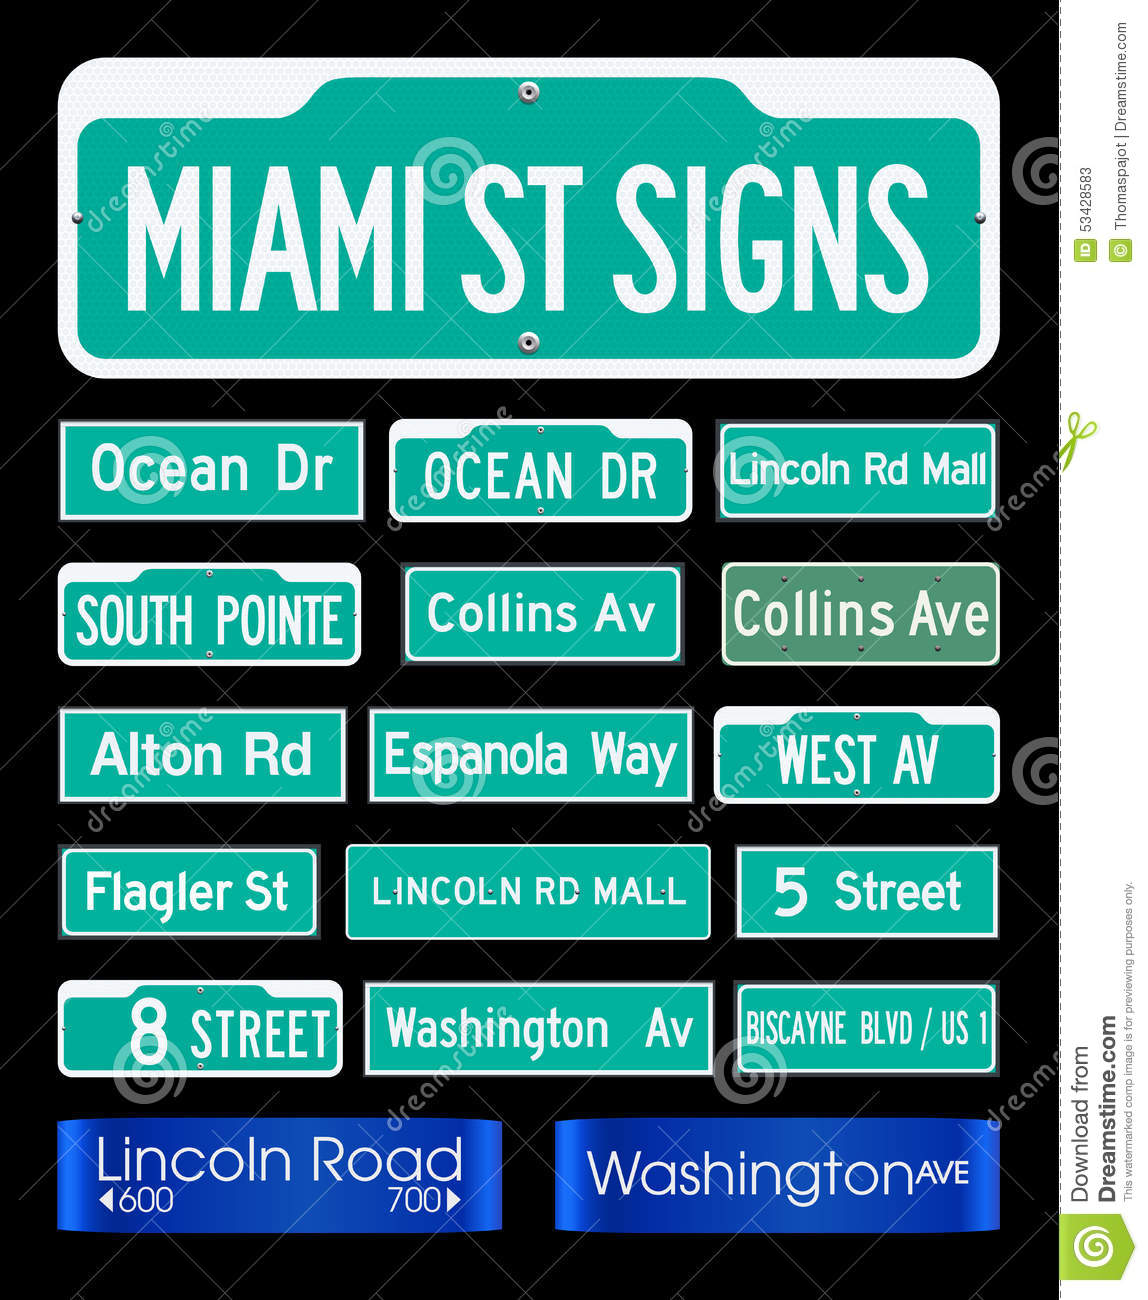 Miami street signs stock vector illustration of replica 53428583 miami street signs biocorpaavc Choice Image